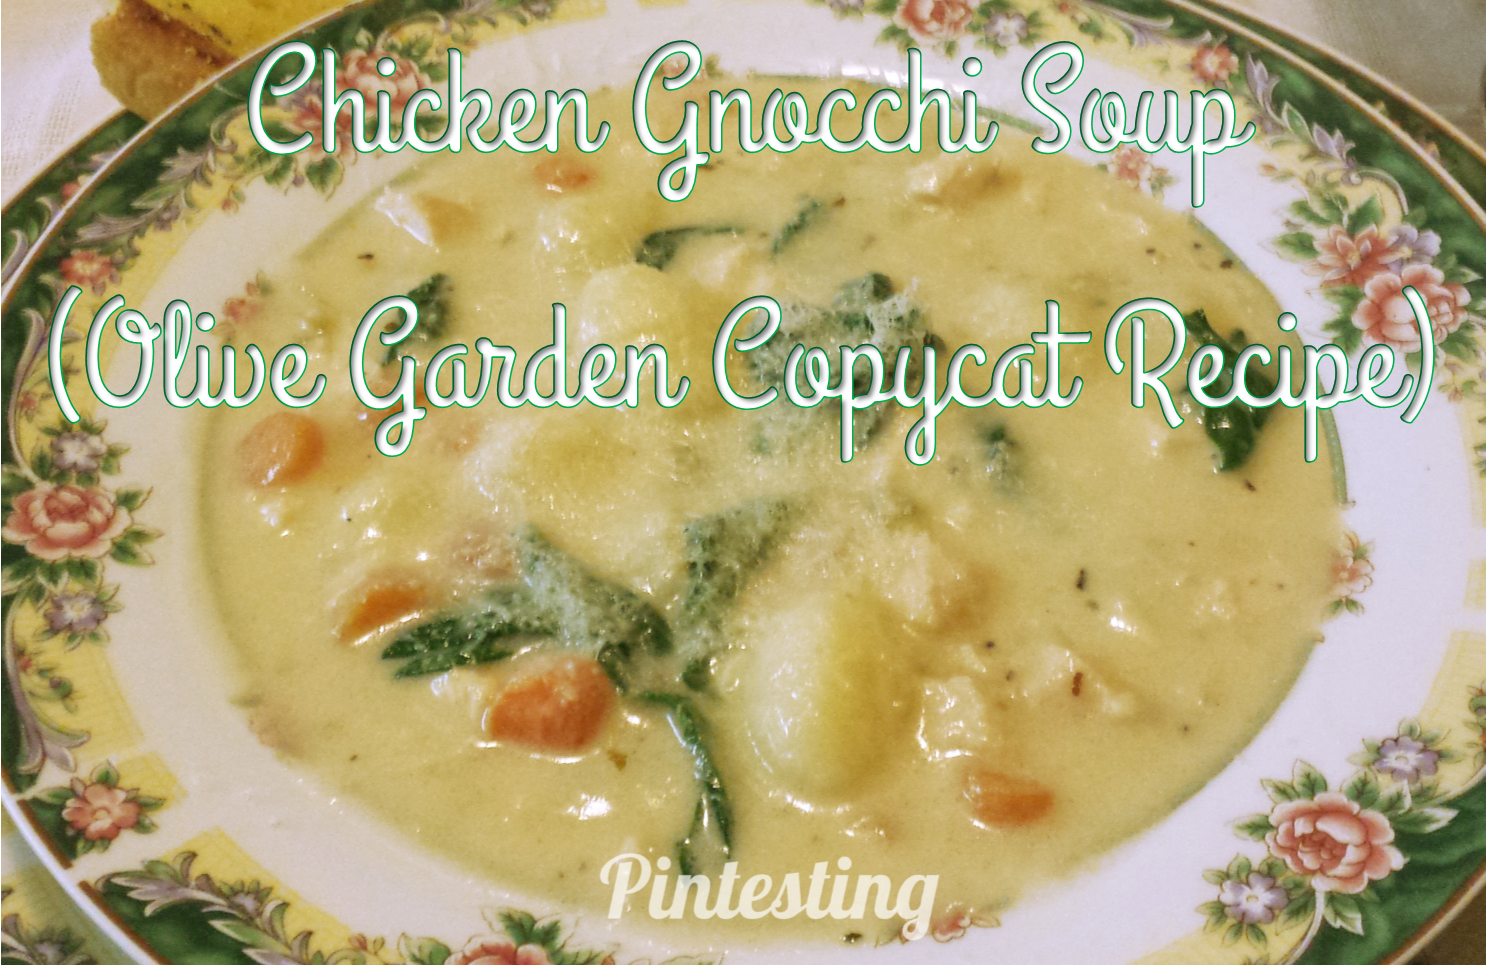 Pintesting Chicken Gnocchi Soup (Olive Garden Copycat Recipe)